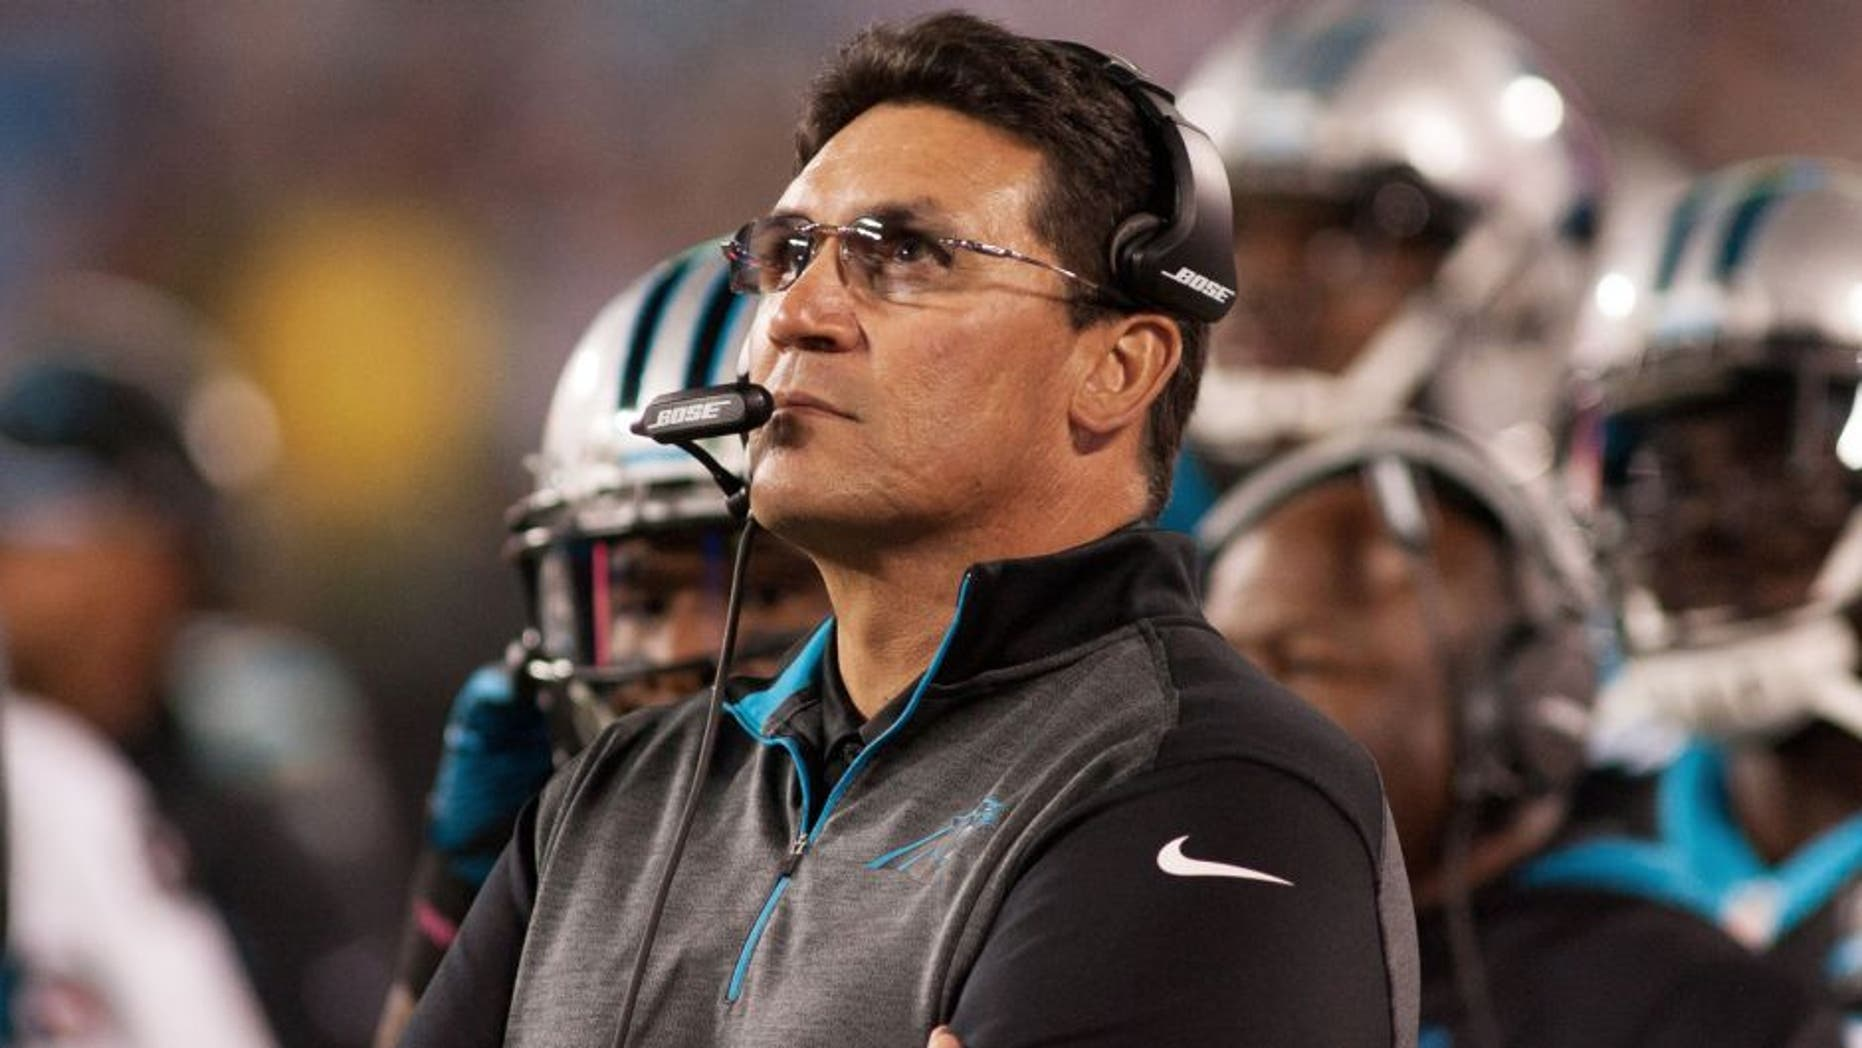 Oct 30, 2014; Charlotte, NC, USA; Carolina Panthers head coach Ron Rivera looks on during the second quarter against the New Orleans Saints at Bank of America Stadium. Mandatory Credit: Jeremy Brevard-USA TODAY Sports